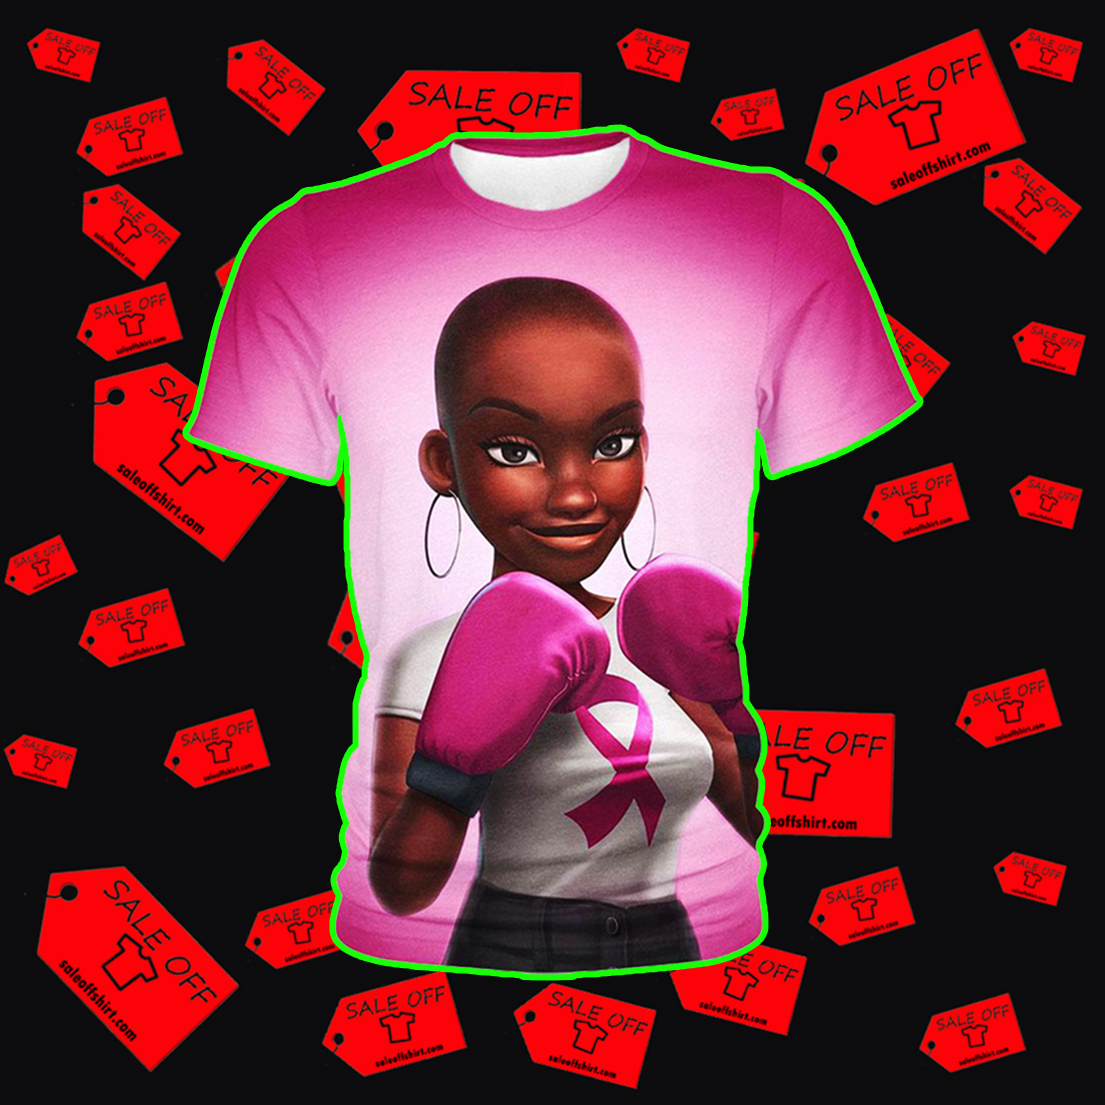 Black Girl Pink Warrior October Breast Cancer Awareness Hoodie 3D, T-shirt 3D, Sweatshirt 3D - Kid t-shirt 3D